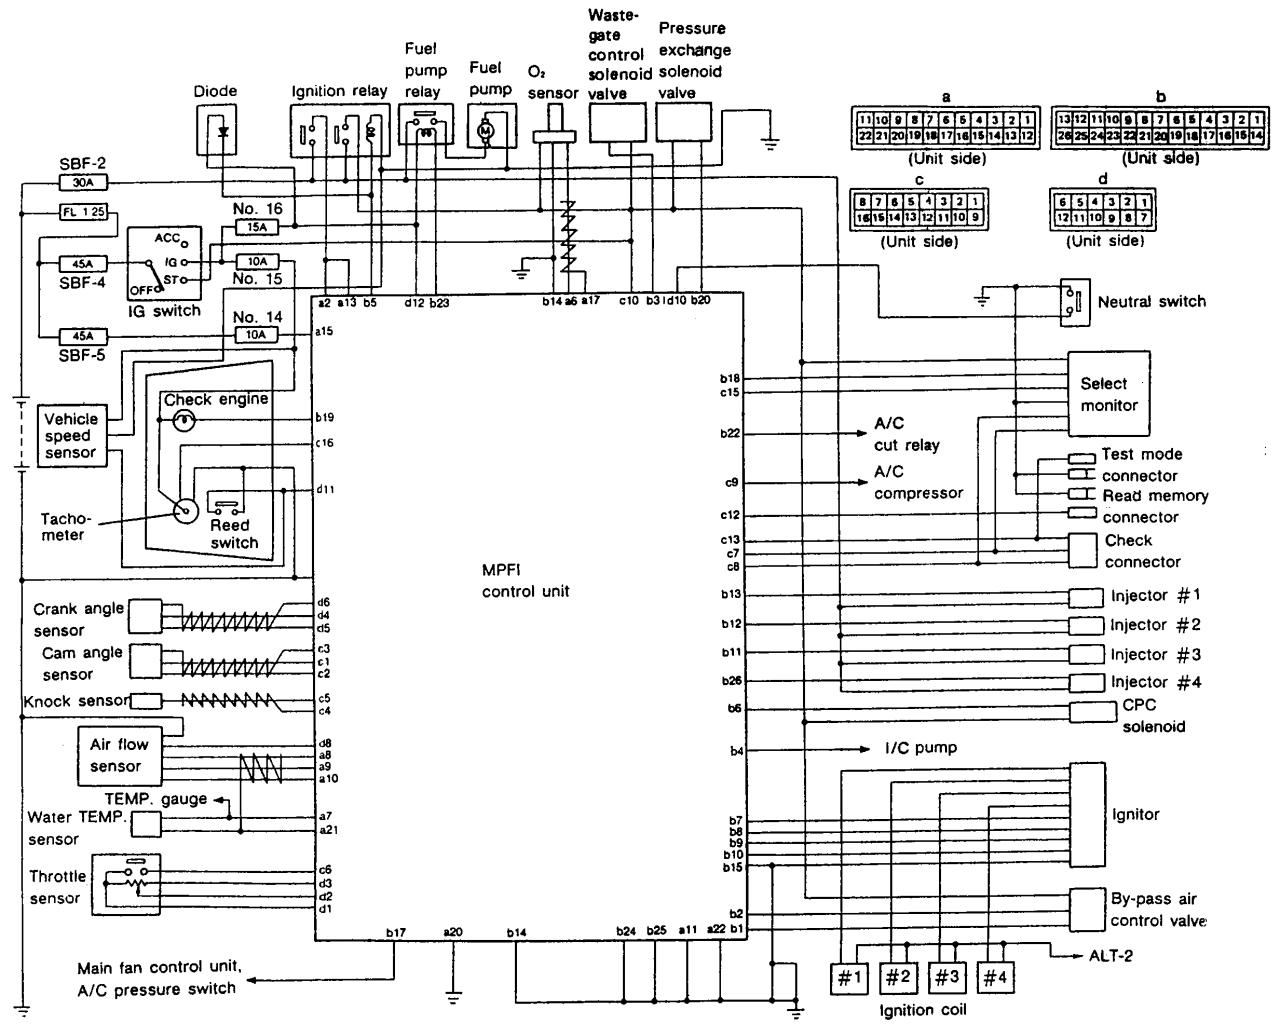 subaru legacy fuse box diagram also subaru evap system diagram on